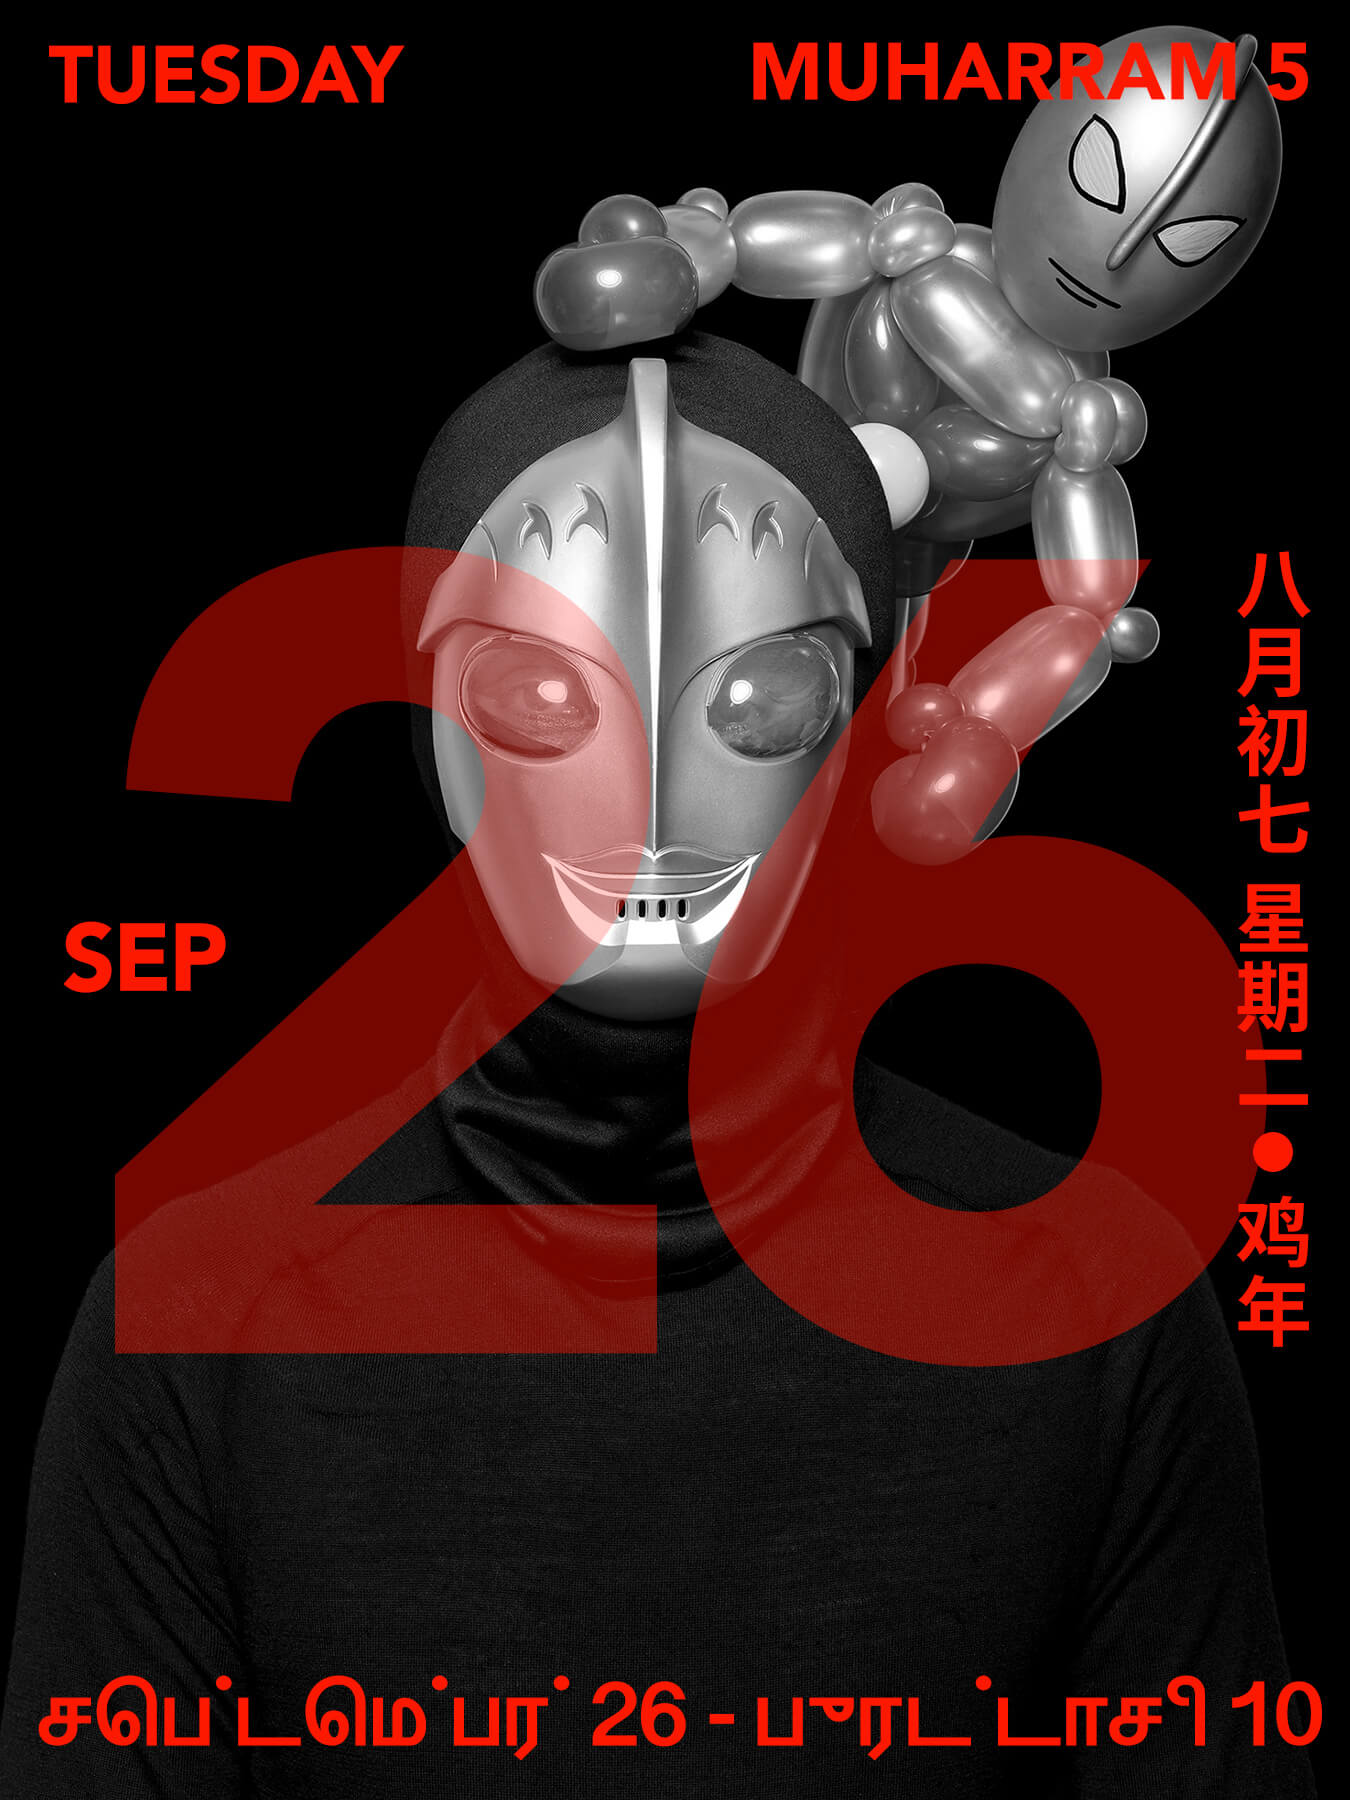 26 Sep 2017: Derong wears an Ultraman mask and has an Ultraman twist balloon peeping from behind